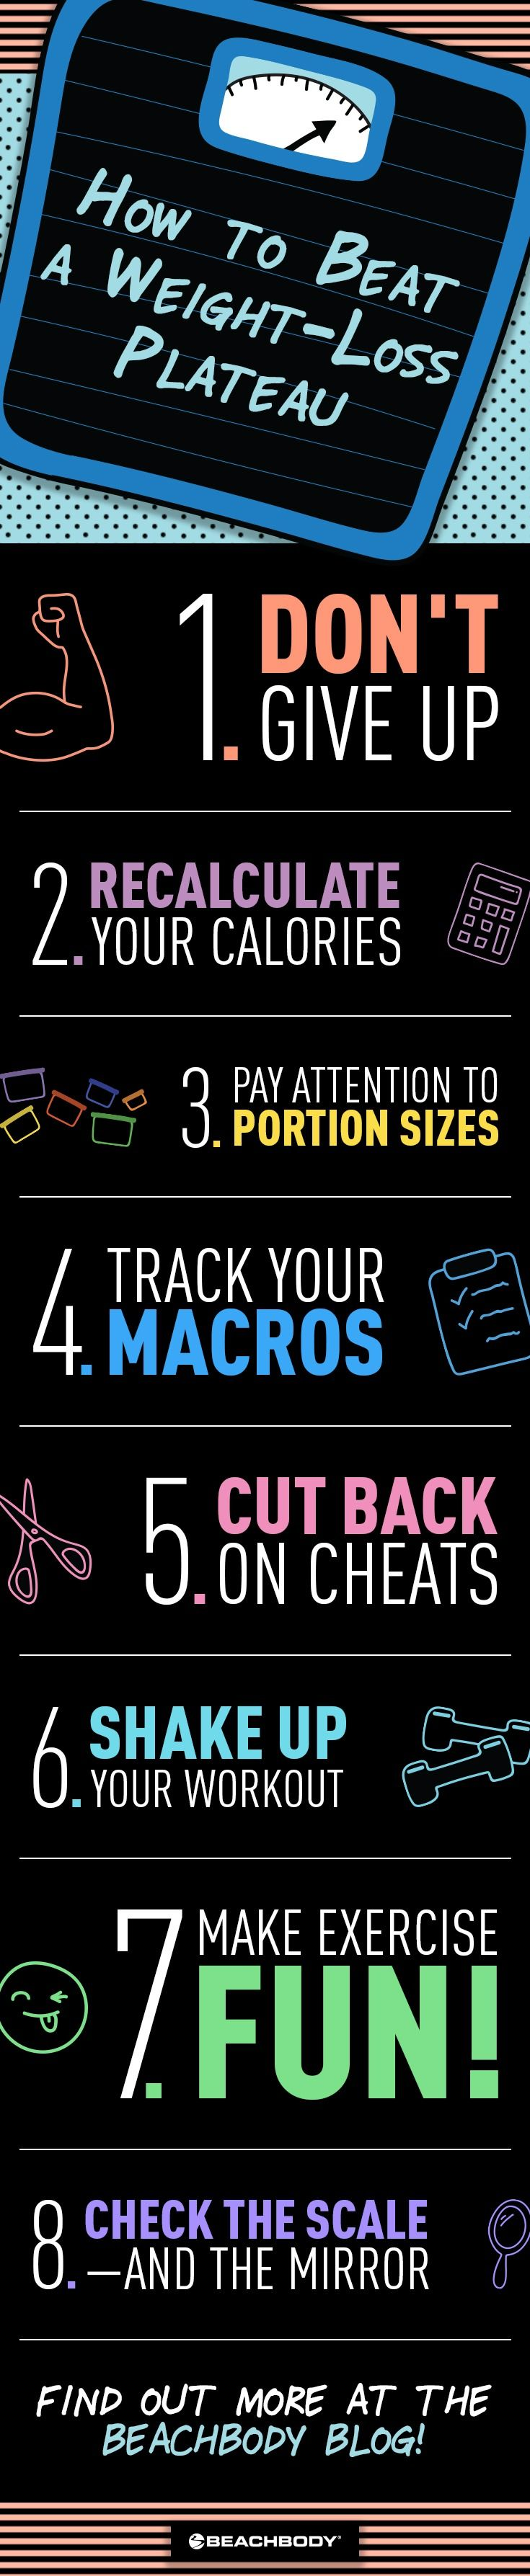 Hitting a weight-loss plateau is a common part of the process, but that doesn't make it any less frustrating — and it can be hard to stay motivated if you're not seeing any progress. When that happens, there are ways to bust through that plateau and get back to losing weight. Here are some tips, tricks, and solutions! // losing weight // fitness // exercise // nutrition // diet // Beachbody // BeachbodyBlog.com